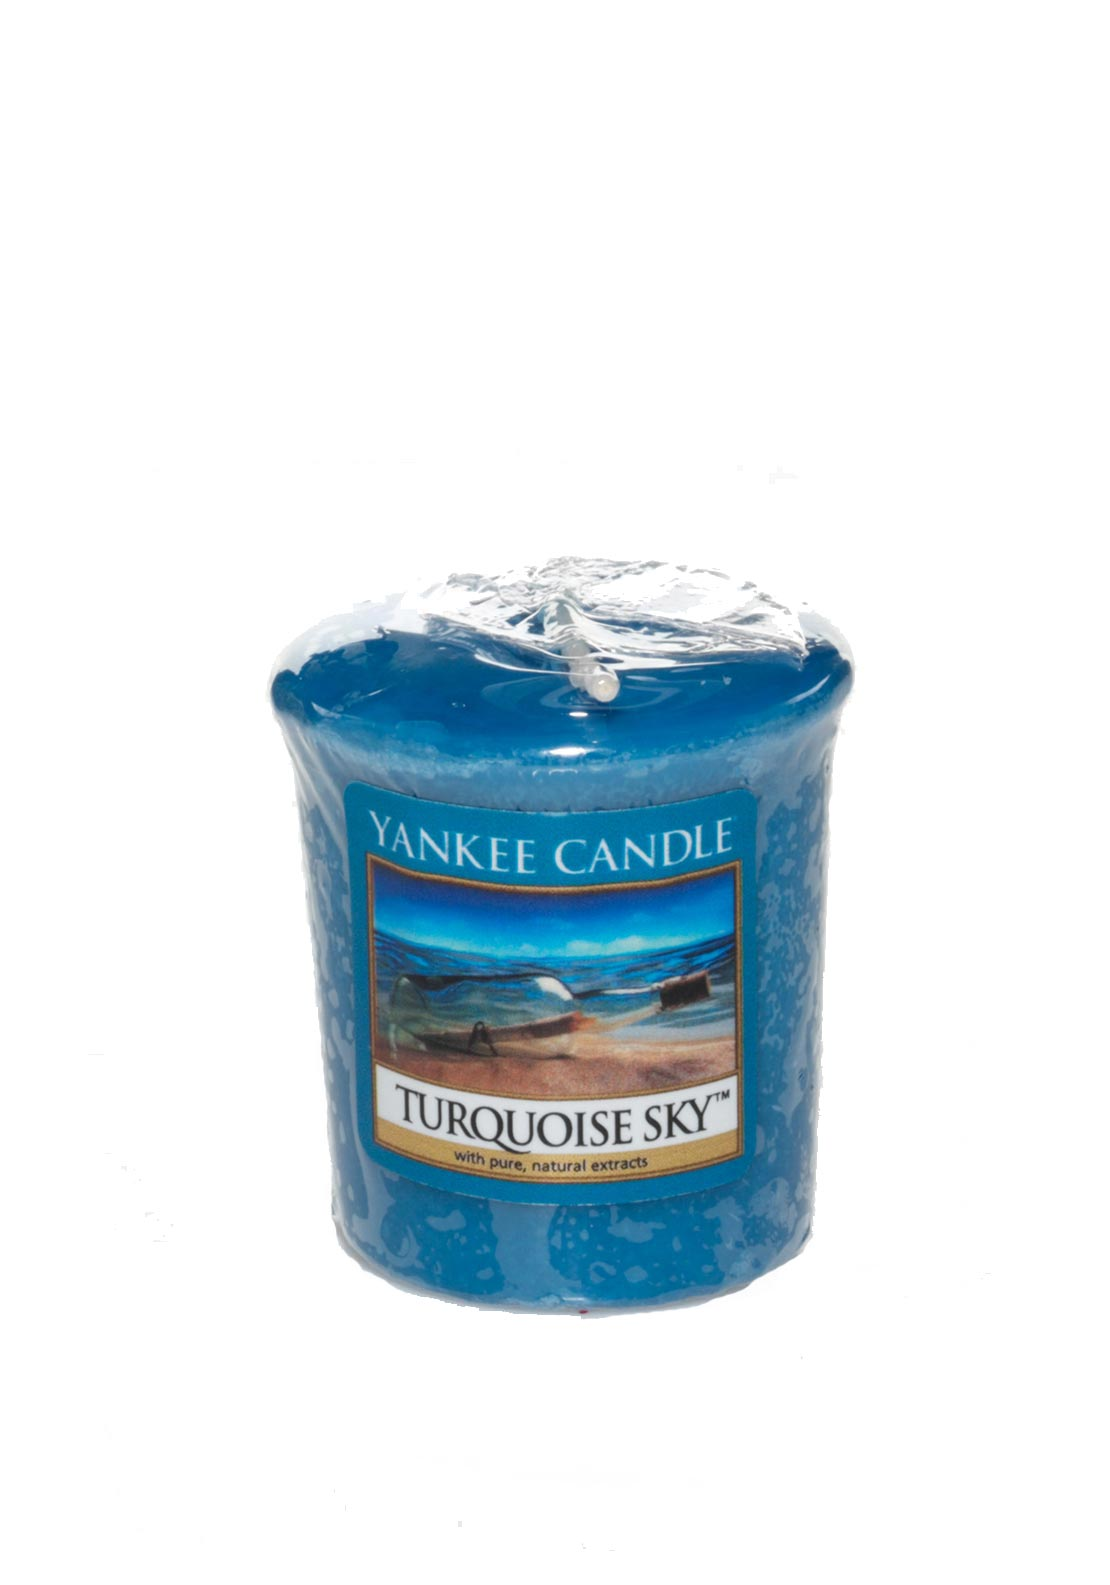 Yankee Candle Sampler Votive Candle, Turquoise Sky